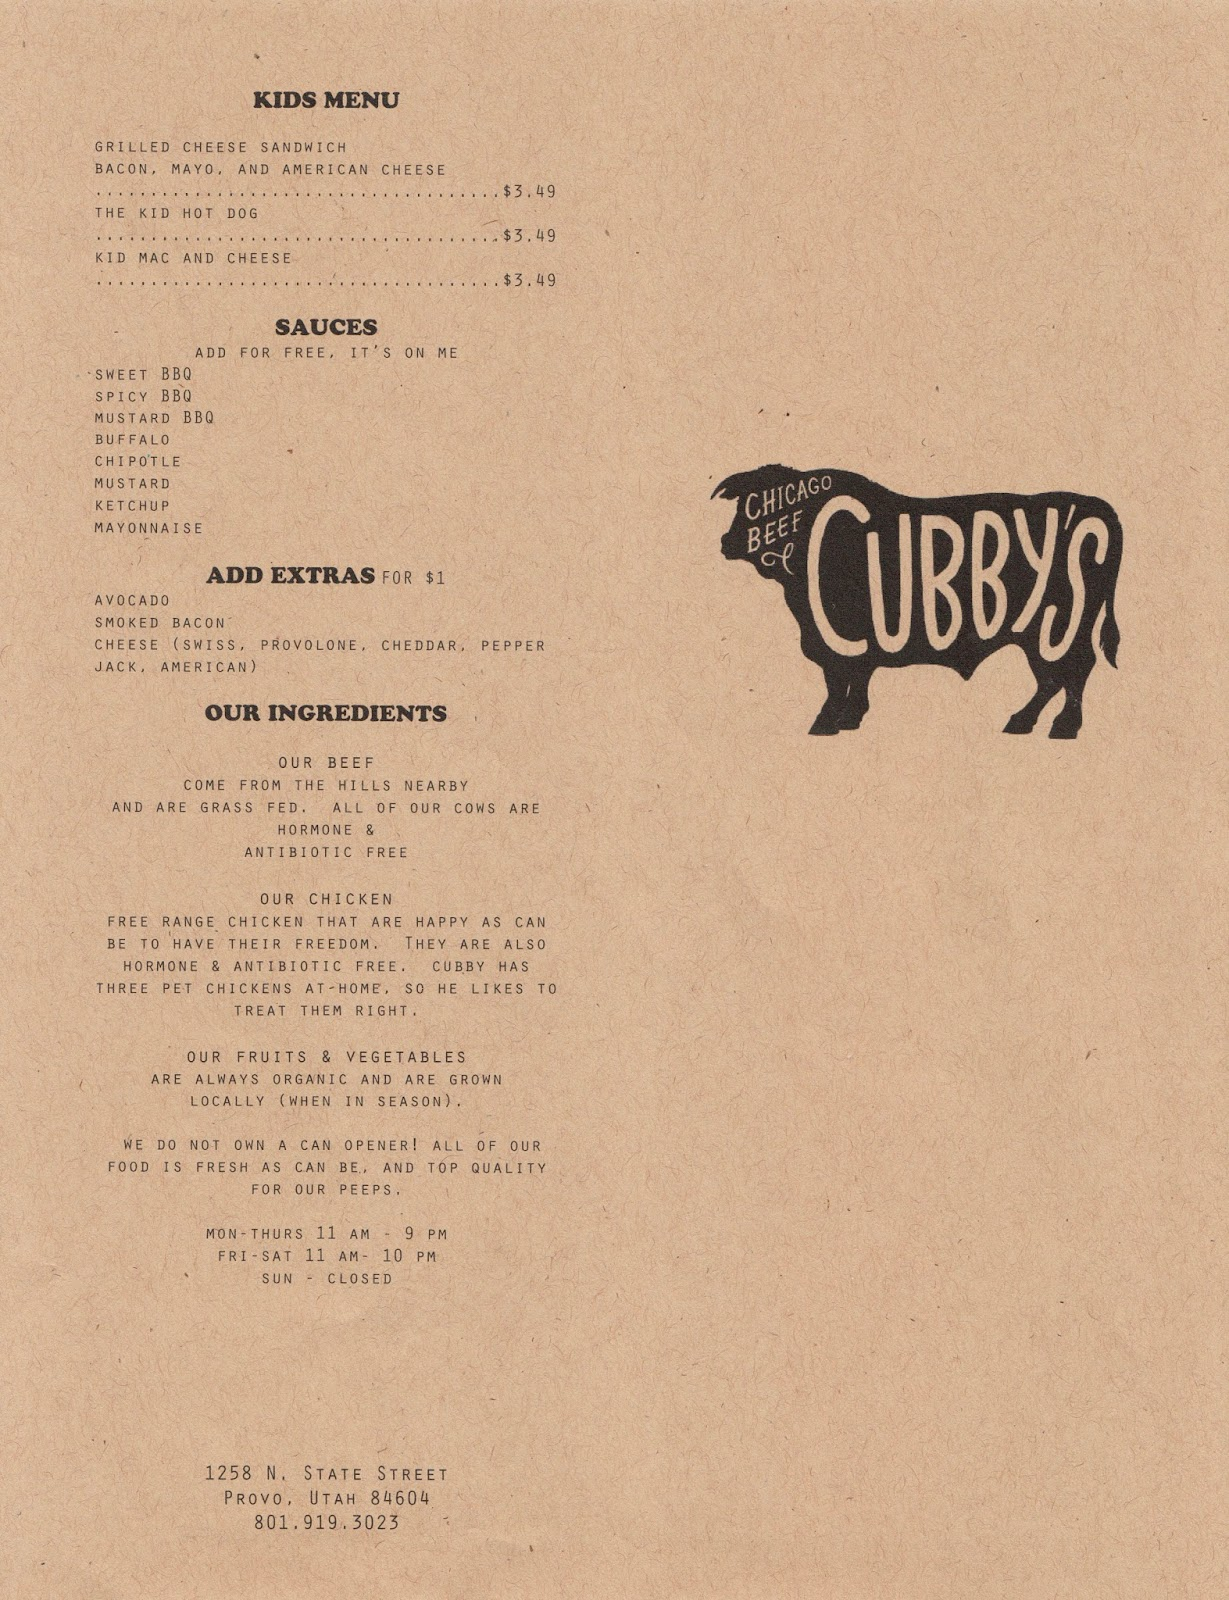 Cubbys Chicago Beef